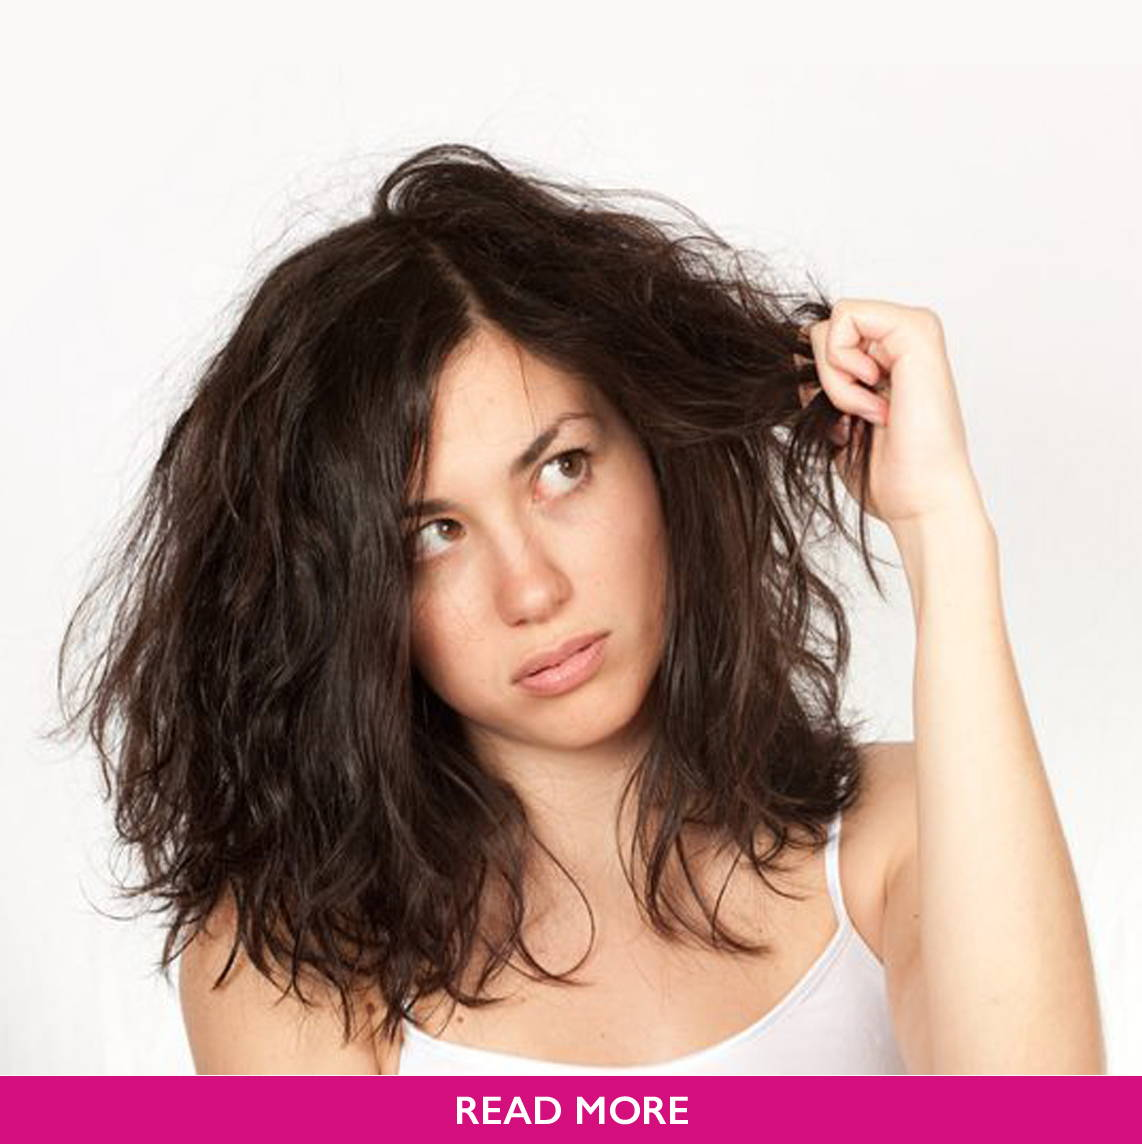 The best hair strengthening products. Read more